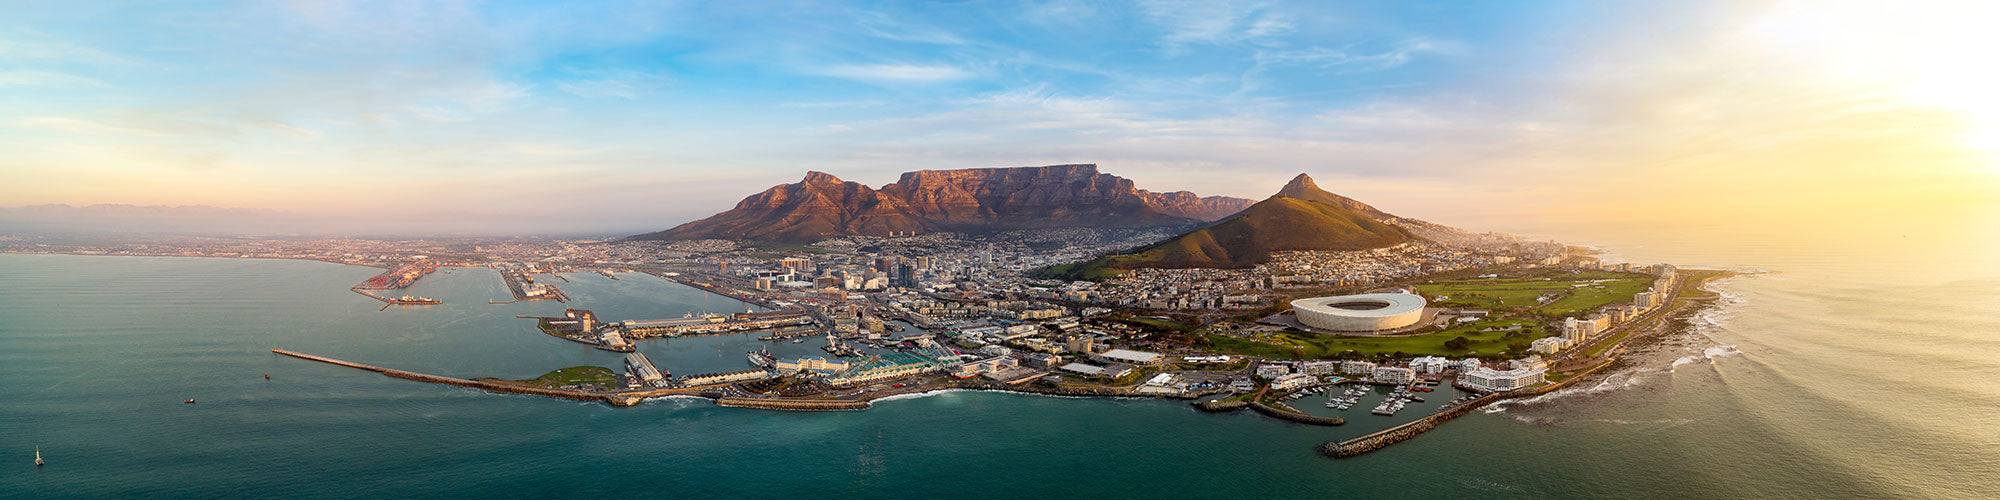 Fine Art Photography Prints of Cape Town - Satellite Images of Earth - Point Two Design